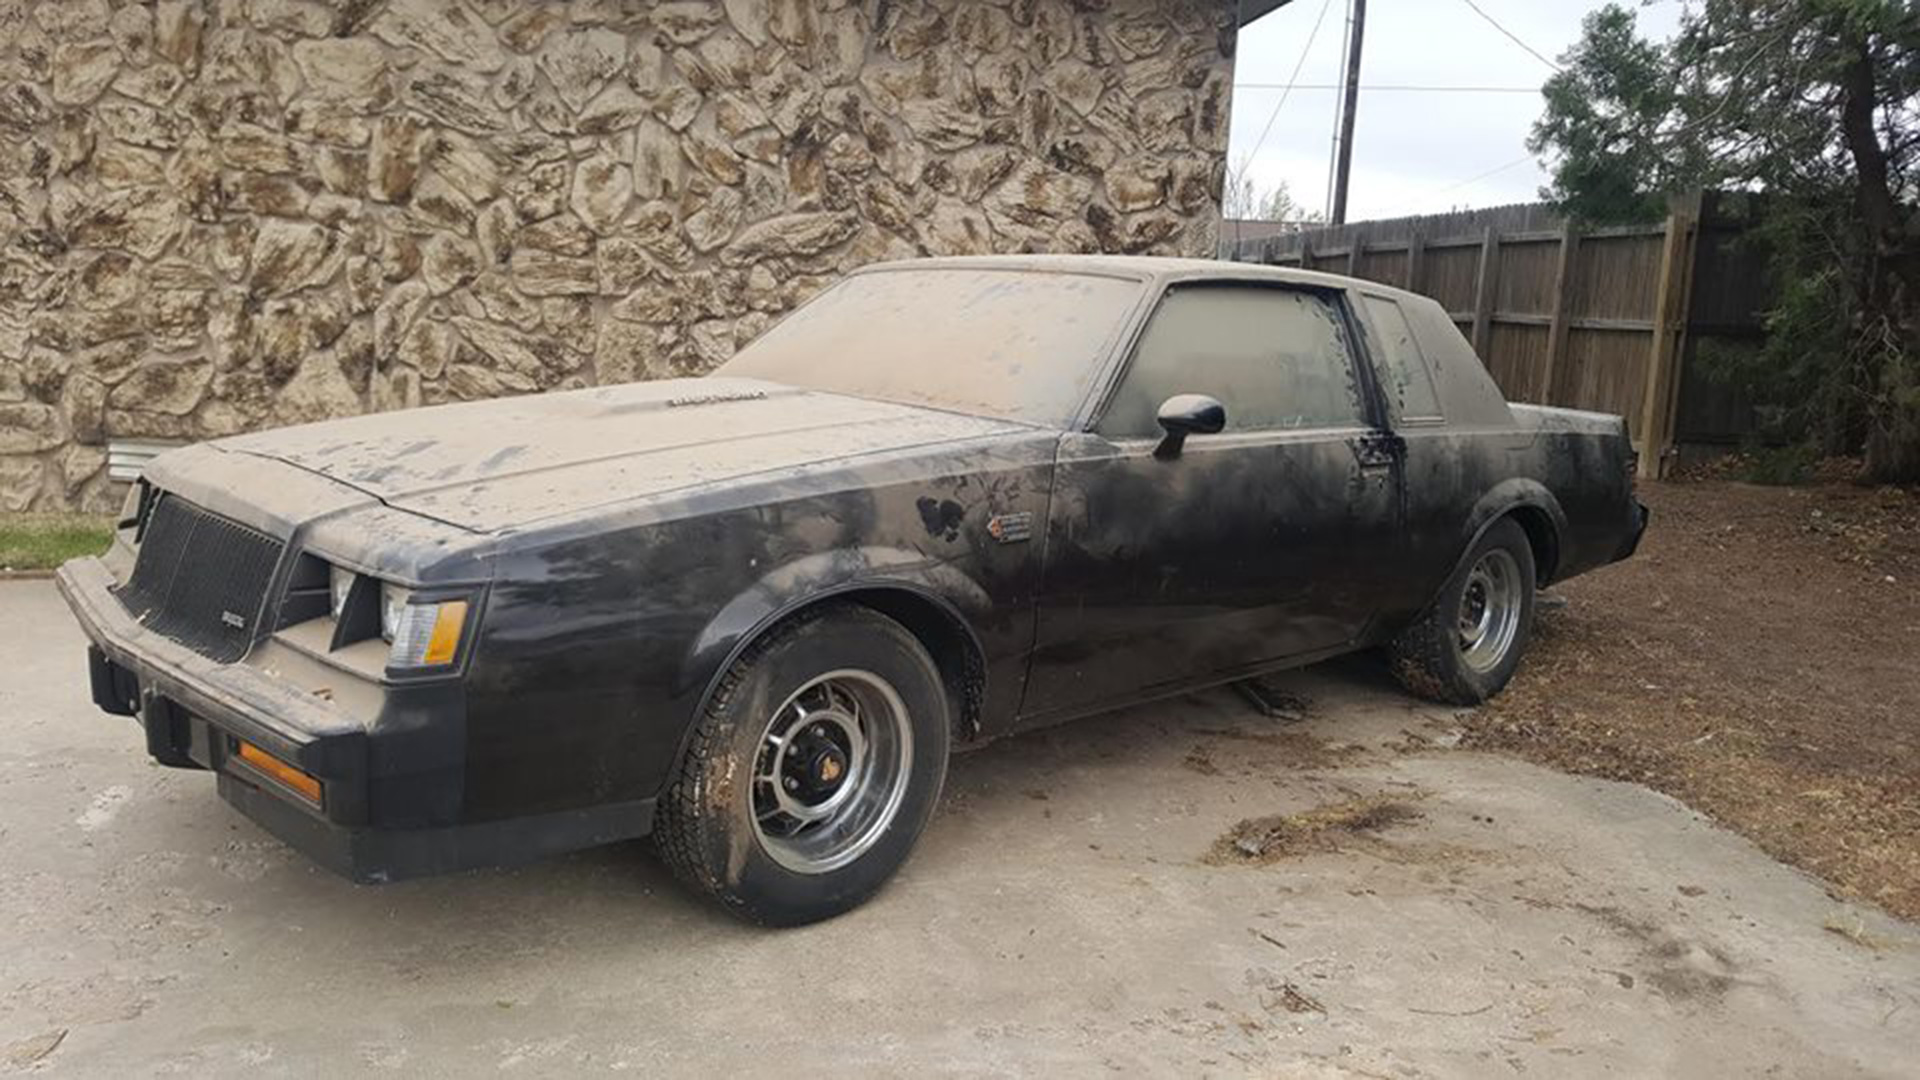 Two Like New Buick Grand Nationals Are The Barn Finds Of